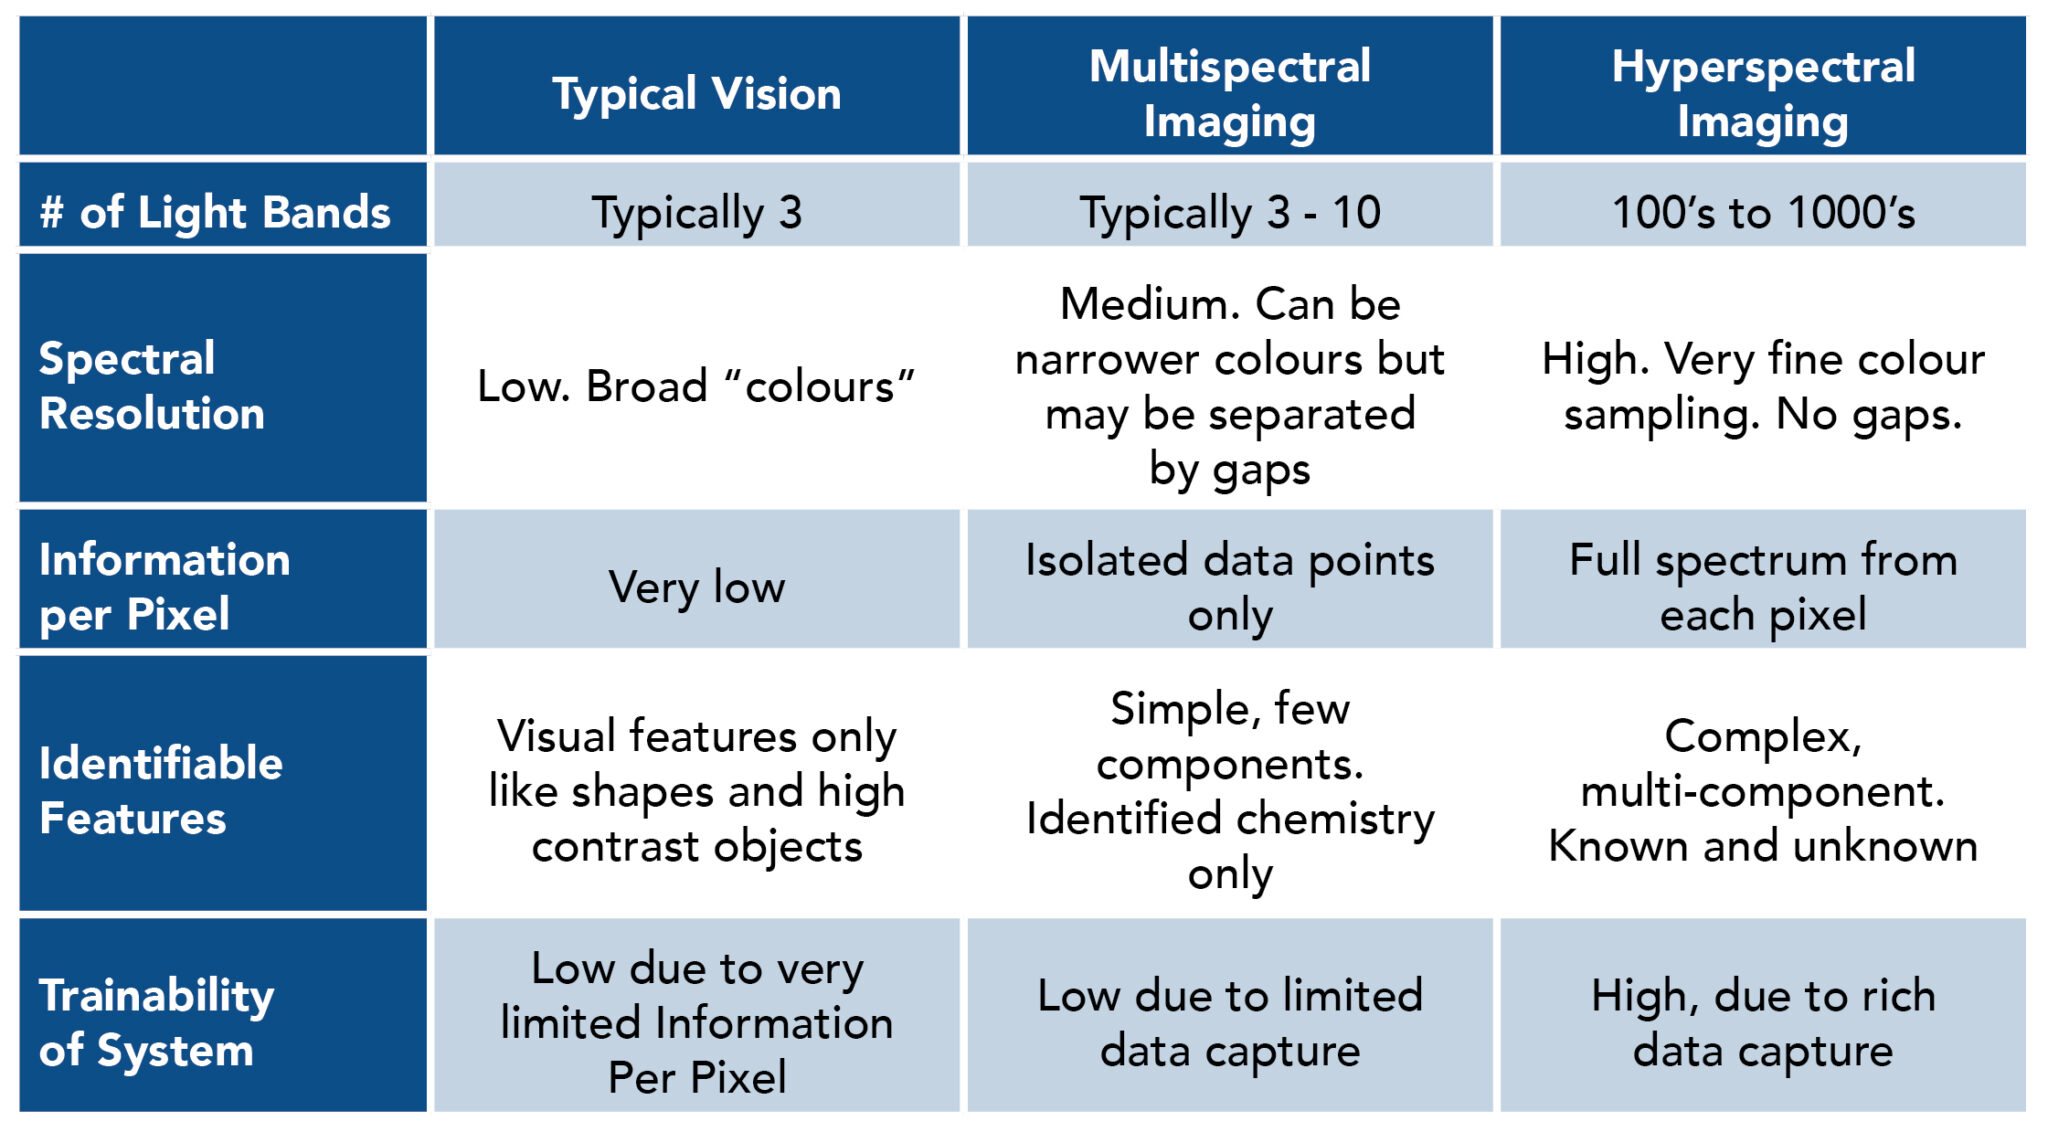 Chart illustrating the difference between typical vision, multispectral imaging and hyperspectral imaging